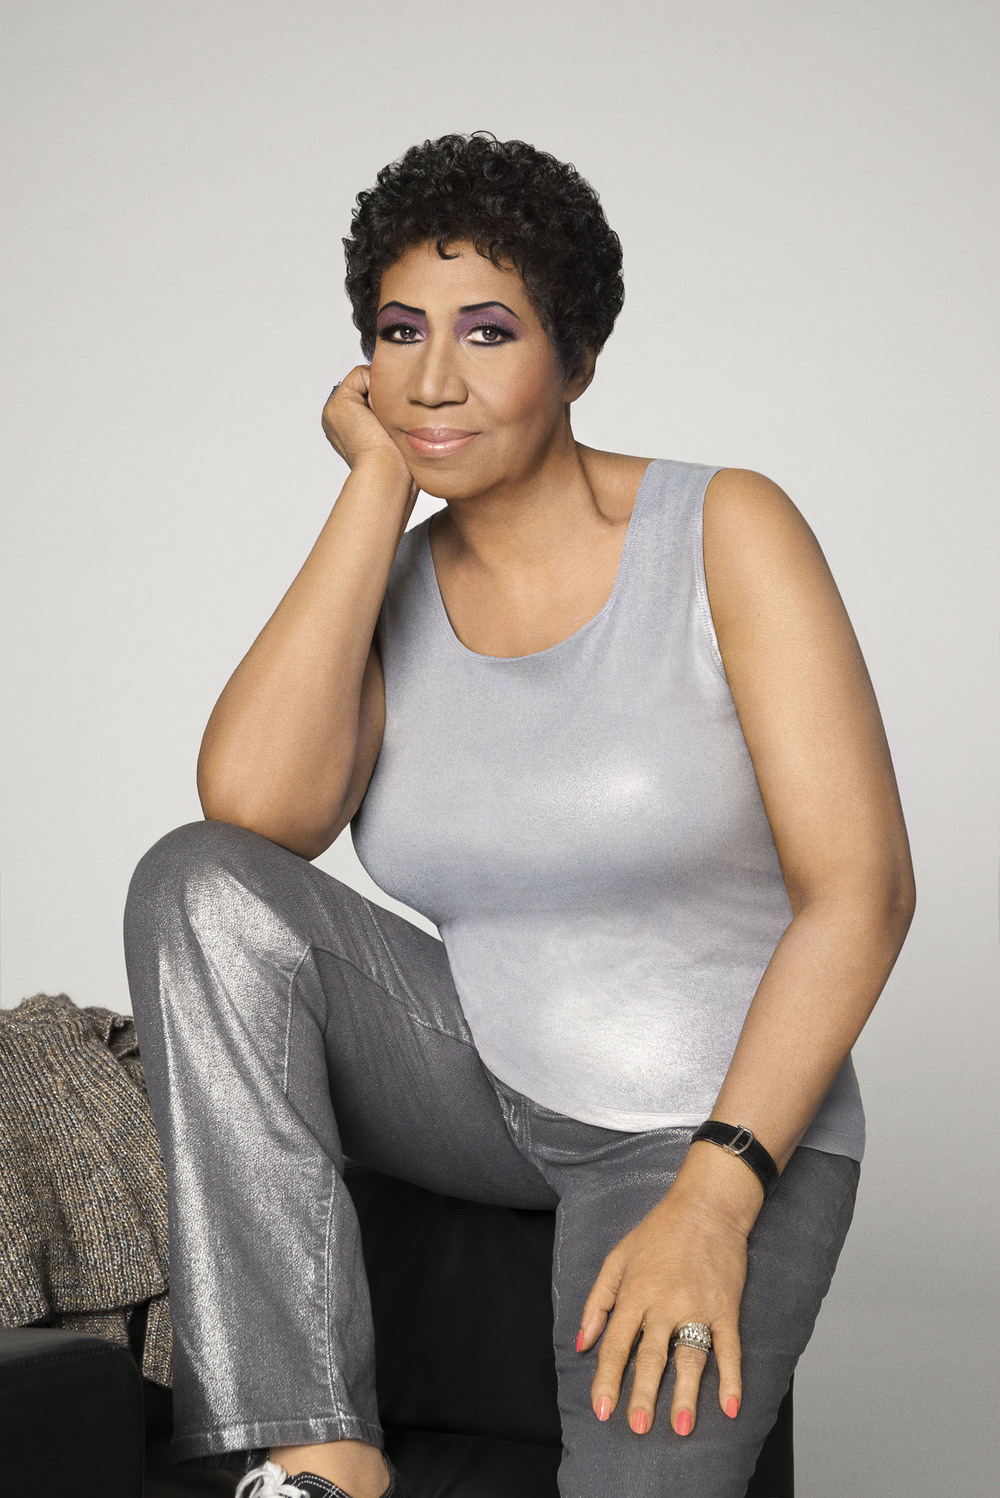 Singer Aretha Franklin on Aug. 8 will headline Musikfest in Bethlehem. (Courtesy Photo)